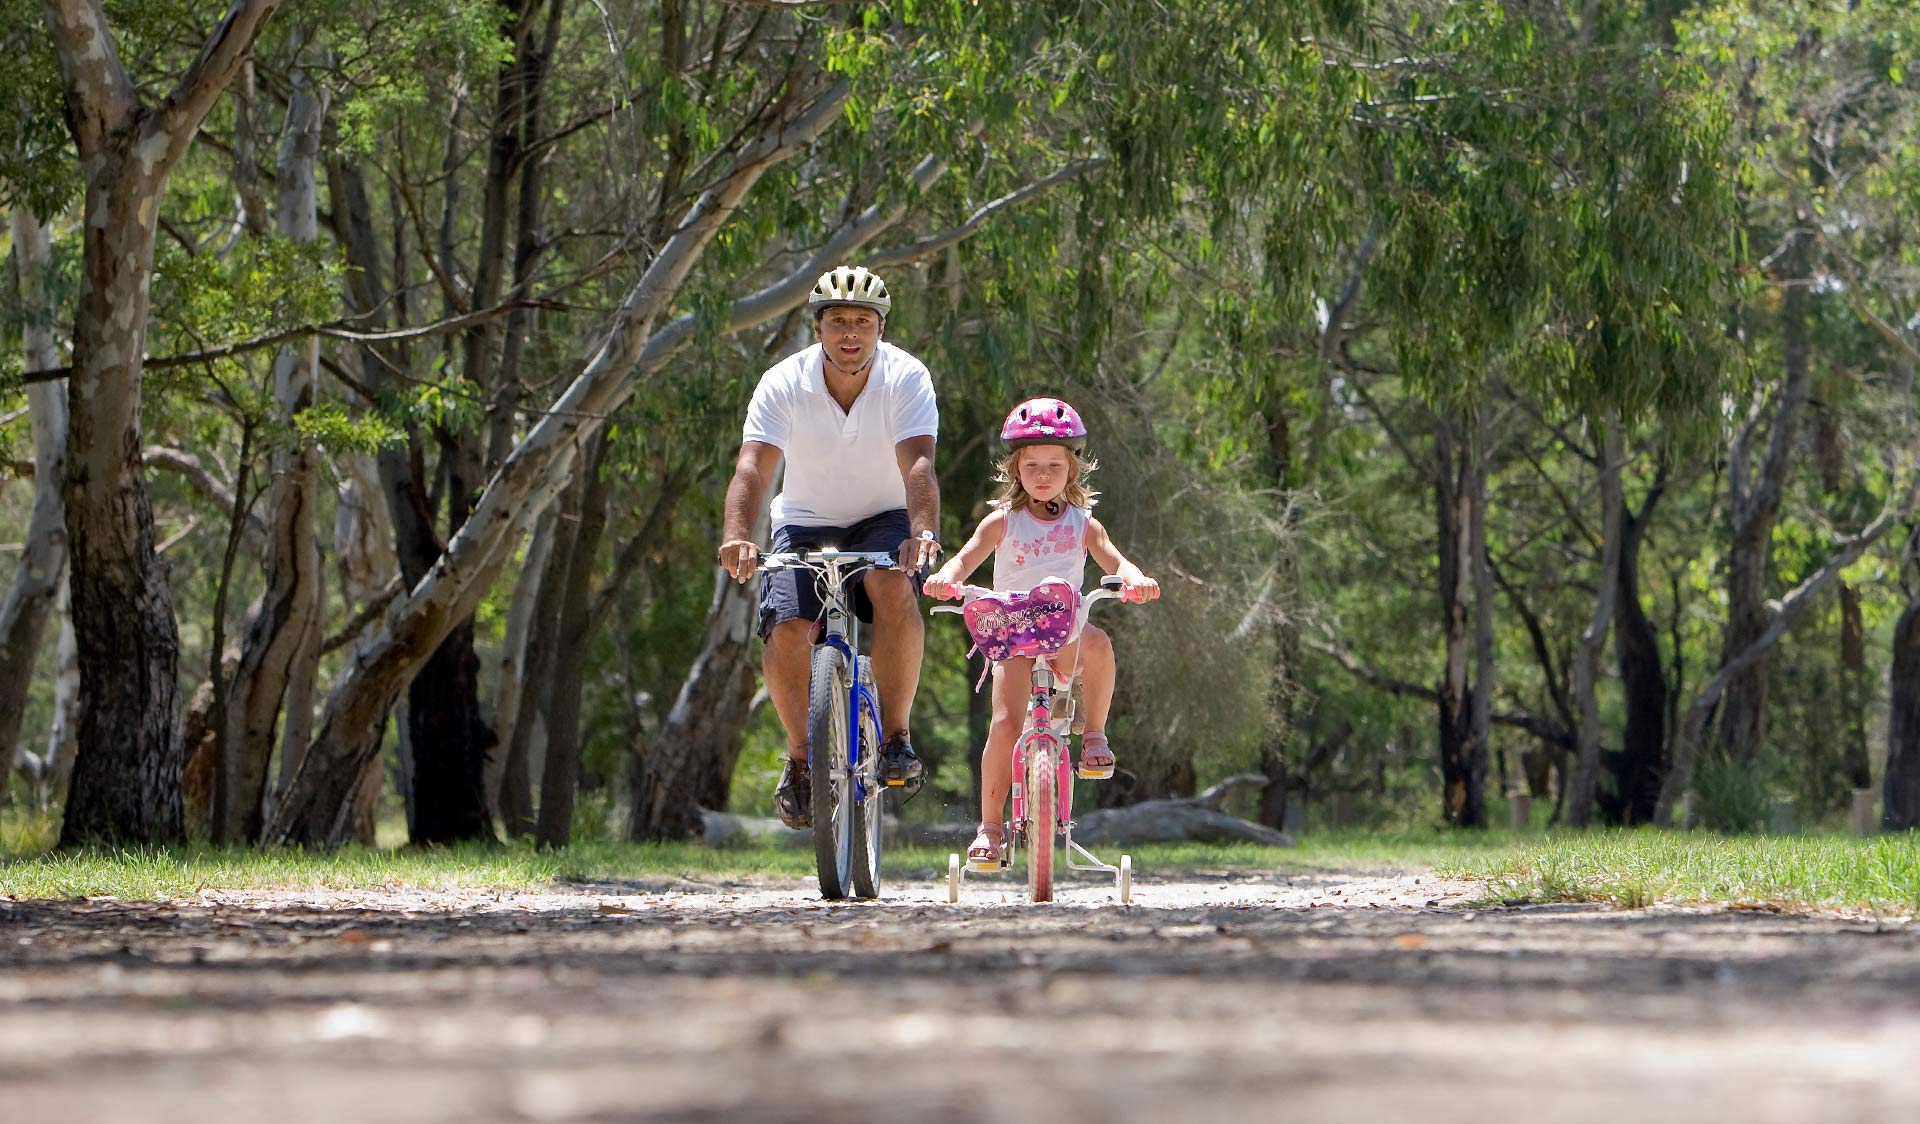 A father teaches his young daughter to ride a bike in Braeside Park.